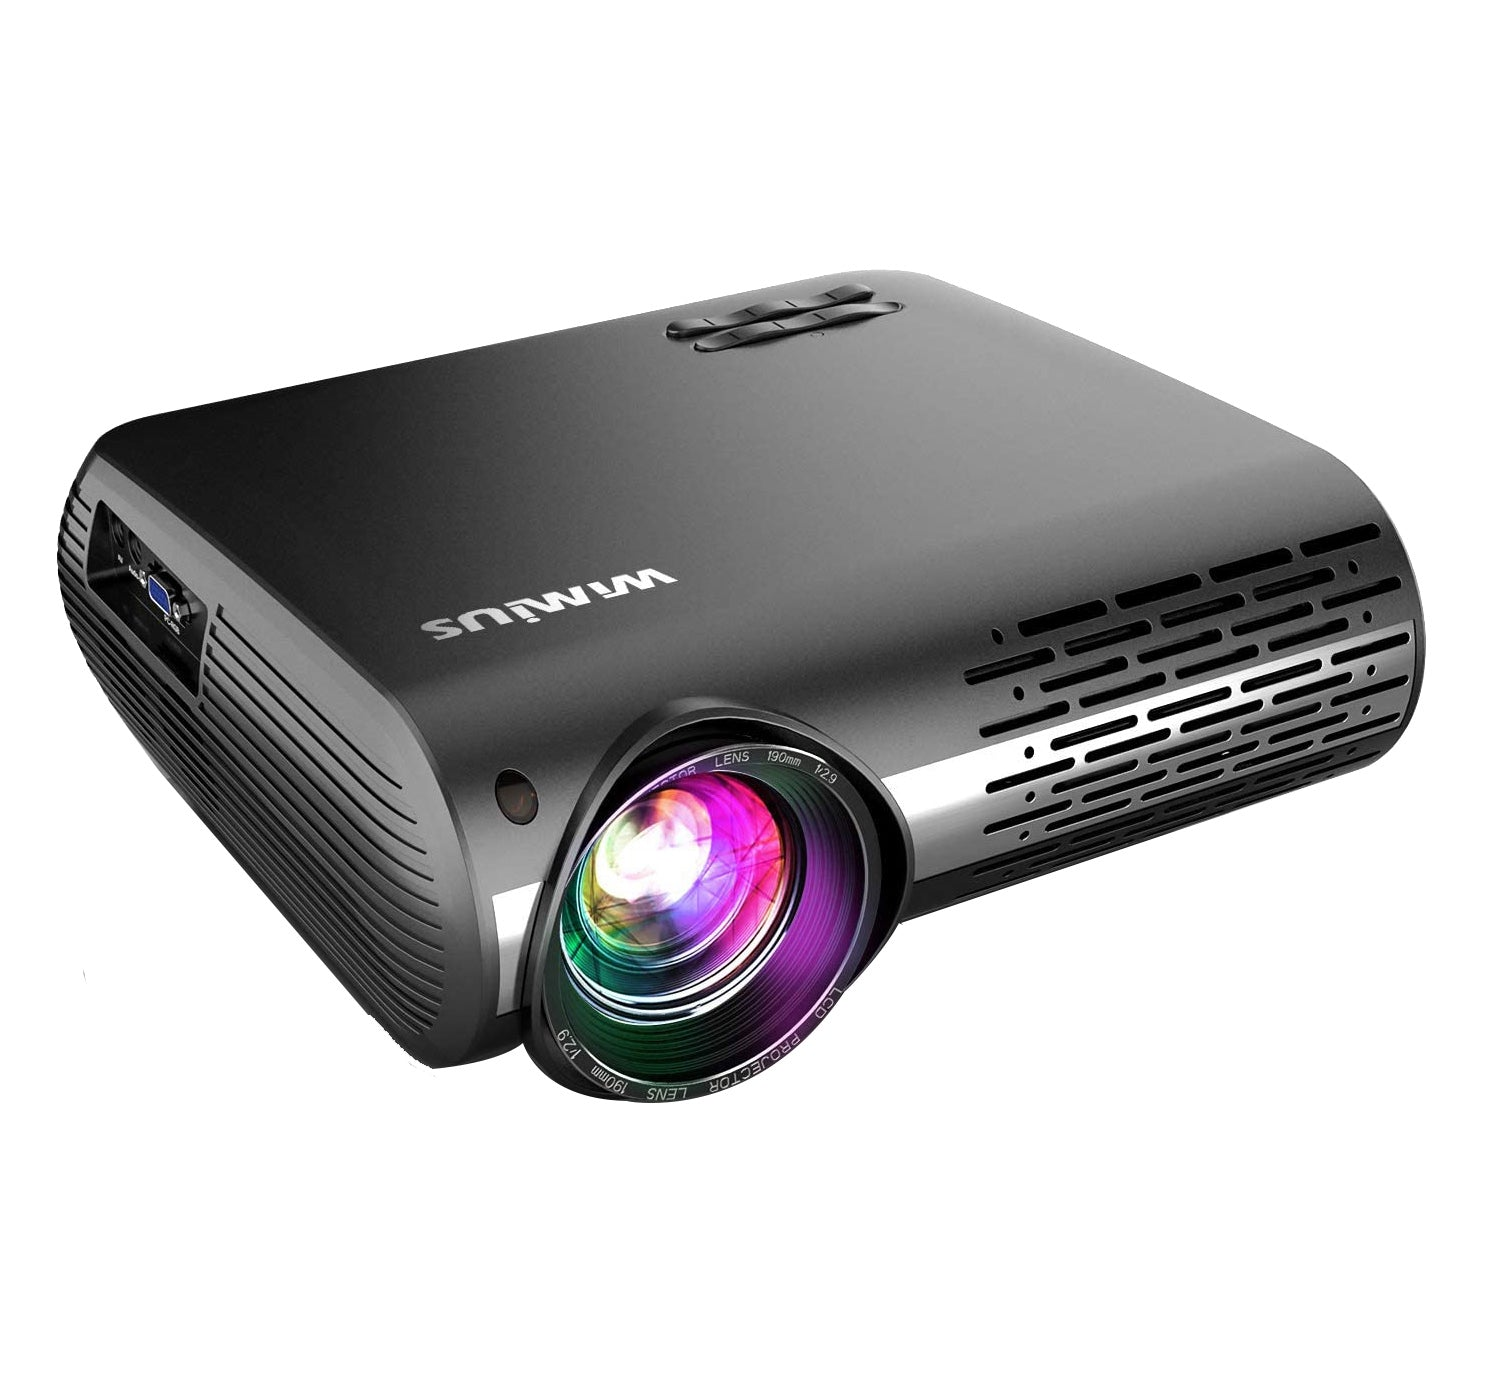 WiMiUS Video Projector - Newest P20 - Wimius